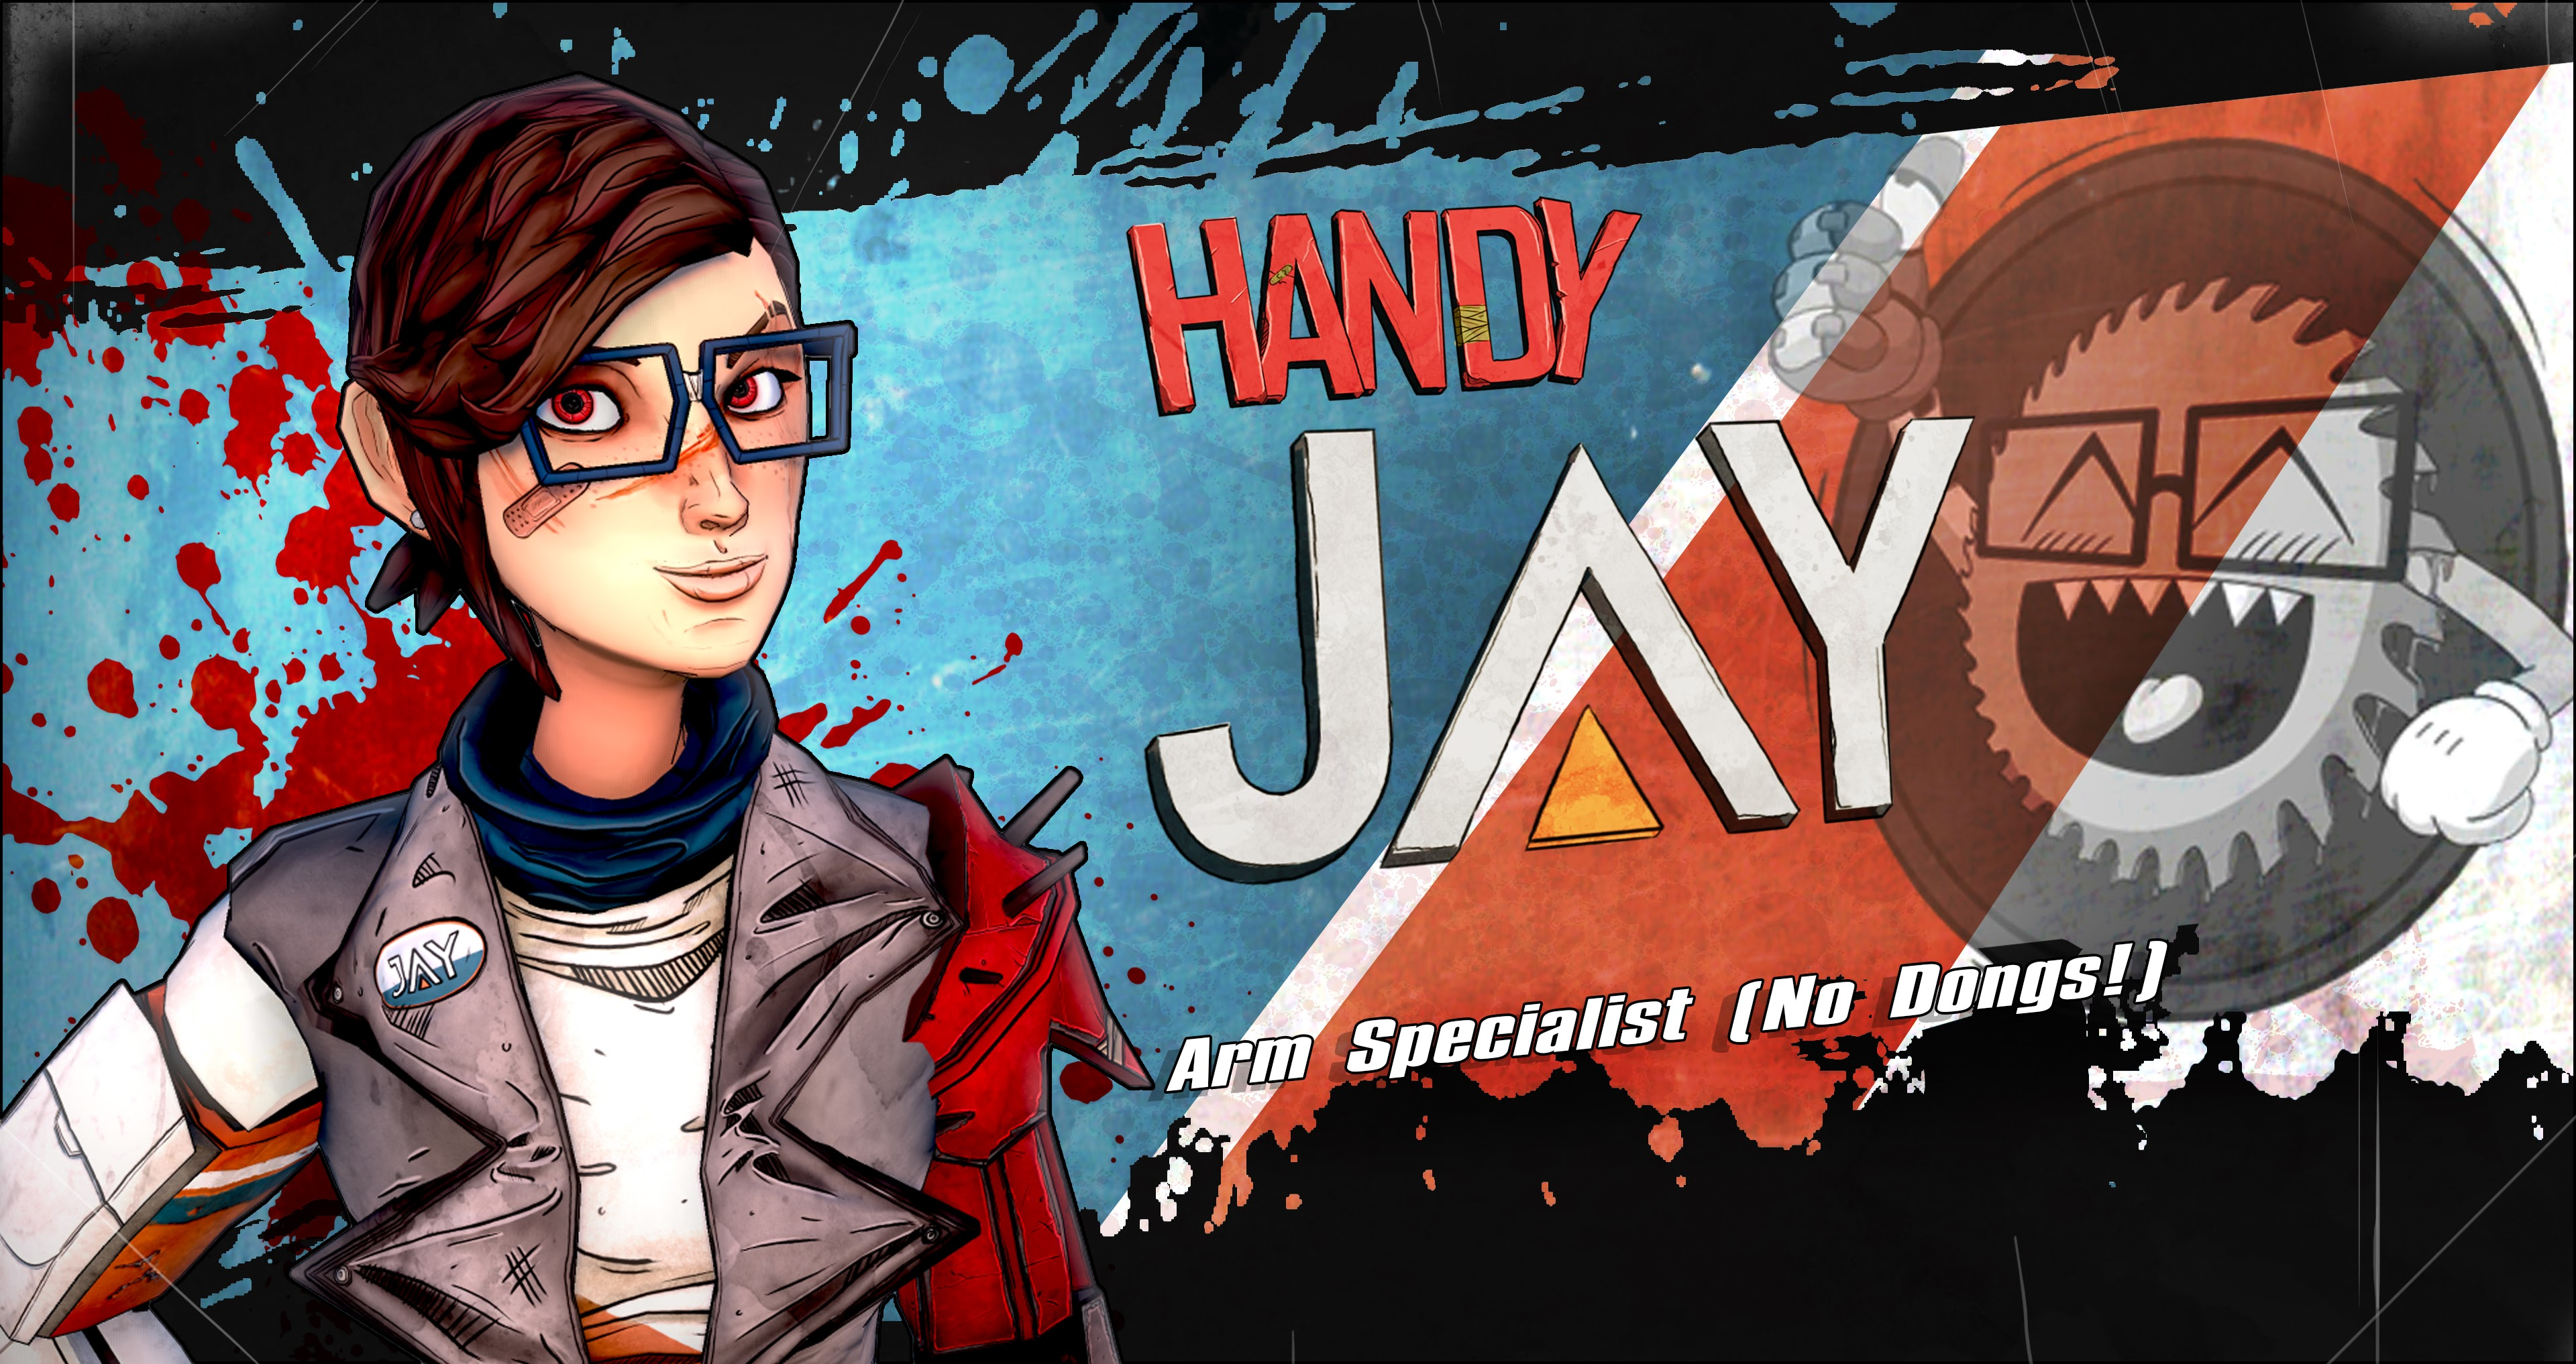 Handy Jay - Scott Heron - Forums2